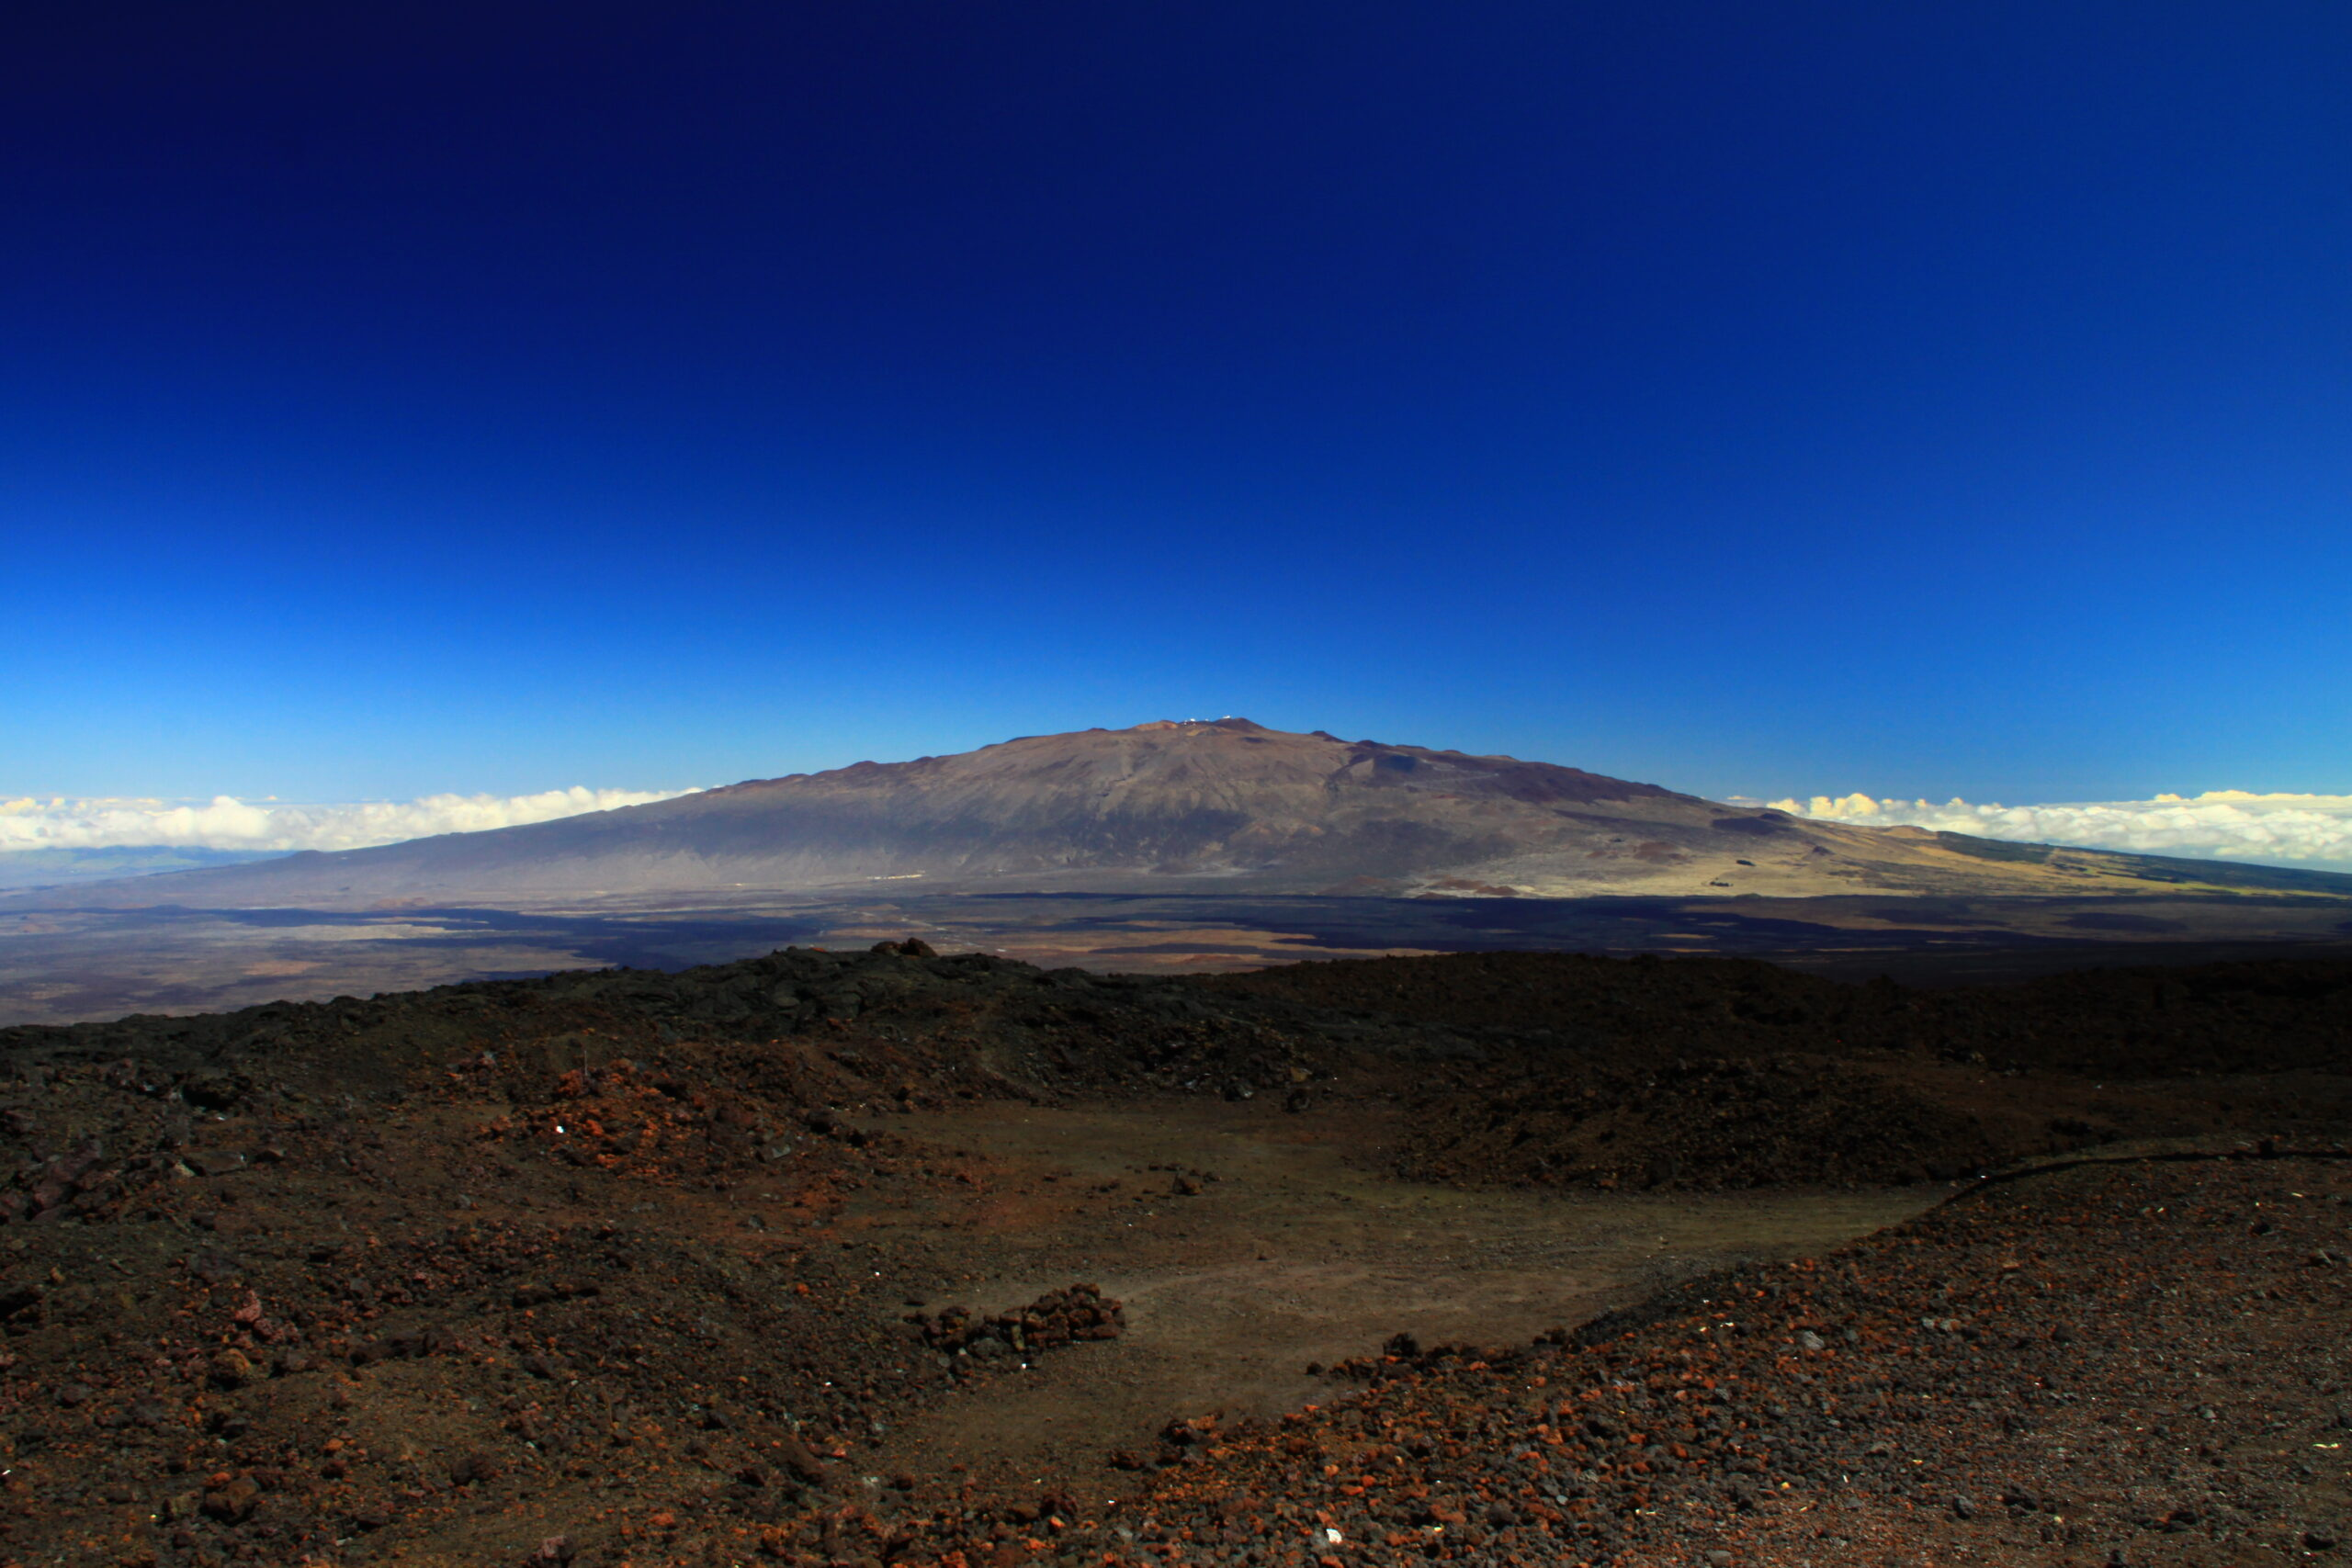 Mount Mauna Kea - 7 Interesting Facts About The Ocean